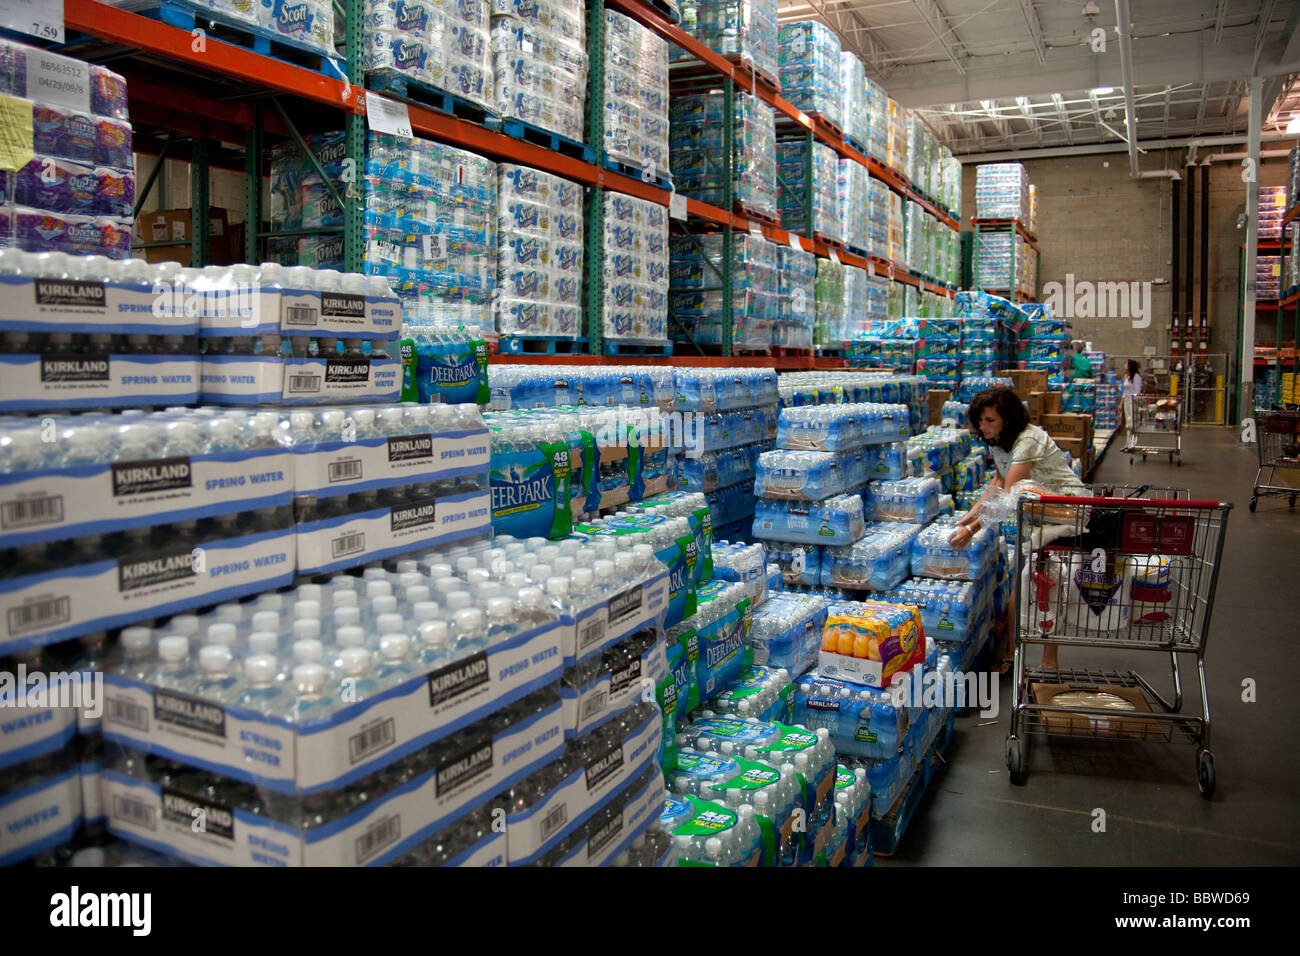 Bottled Water Stock Photos & Bottled Water Stock Images - Alamy